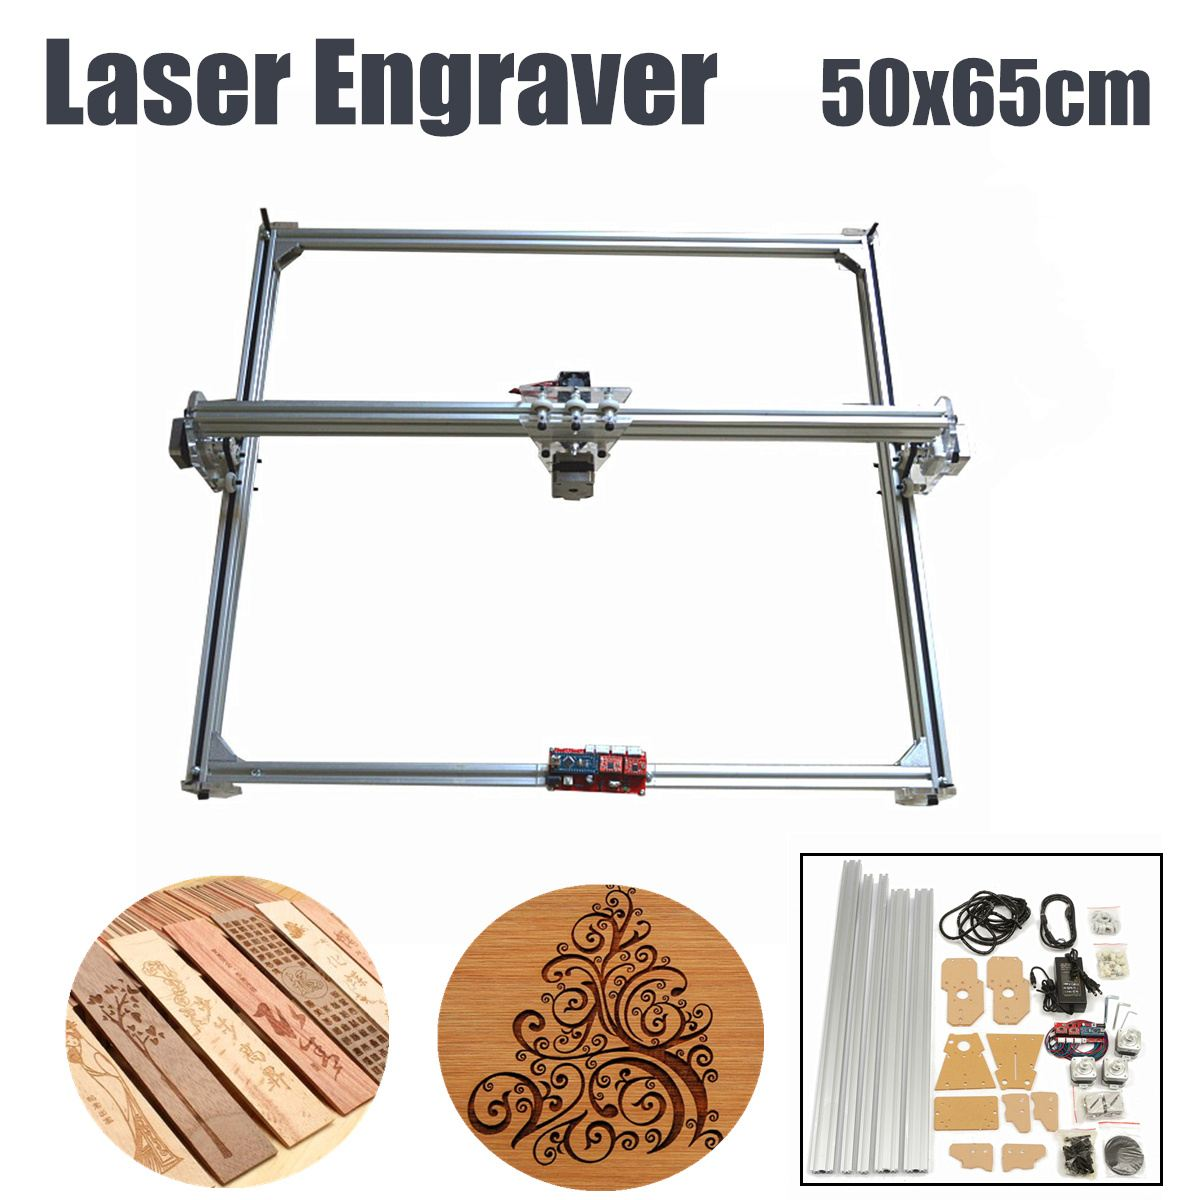 1Set 65x50cm 100mw-5500mw DIY Desktop Mini Laser Cutting/Engraving Engraver Machine DC 12V Wood Cutter/Printer/Power Adjustable(China)